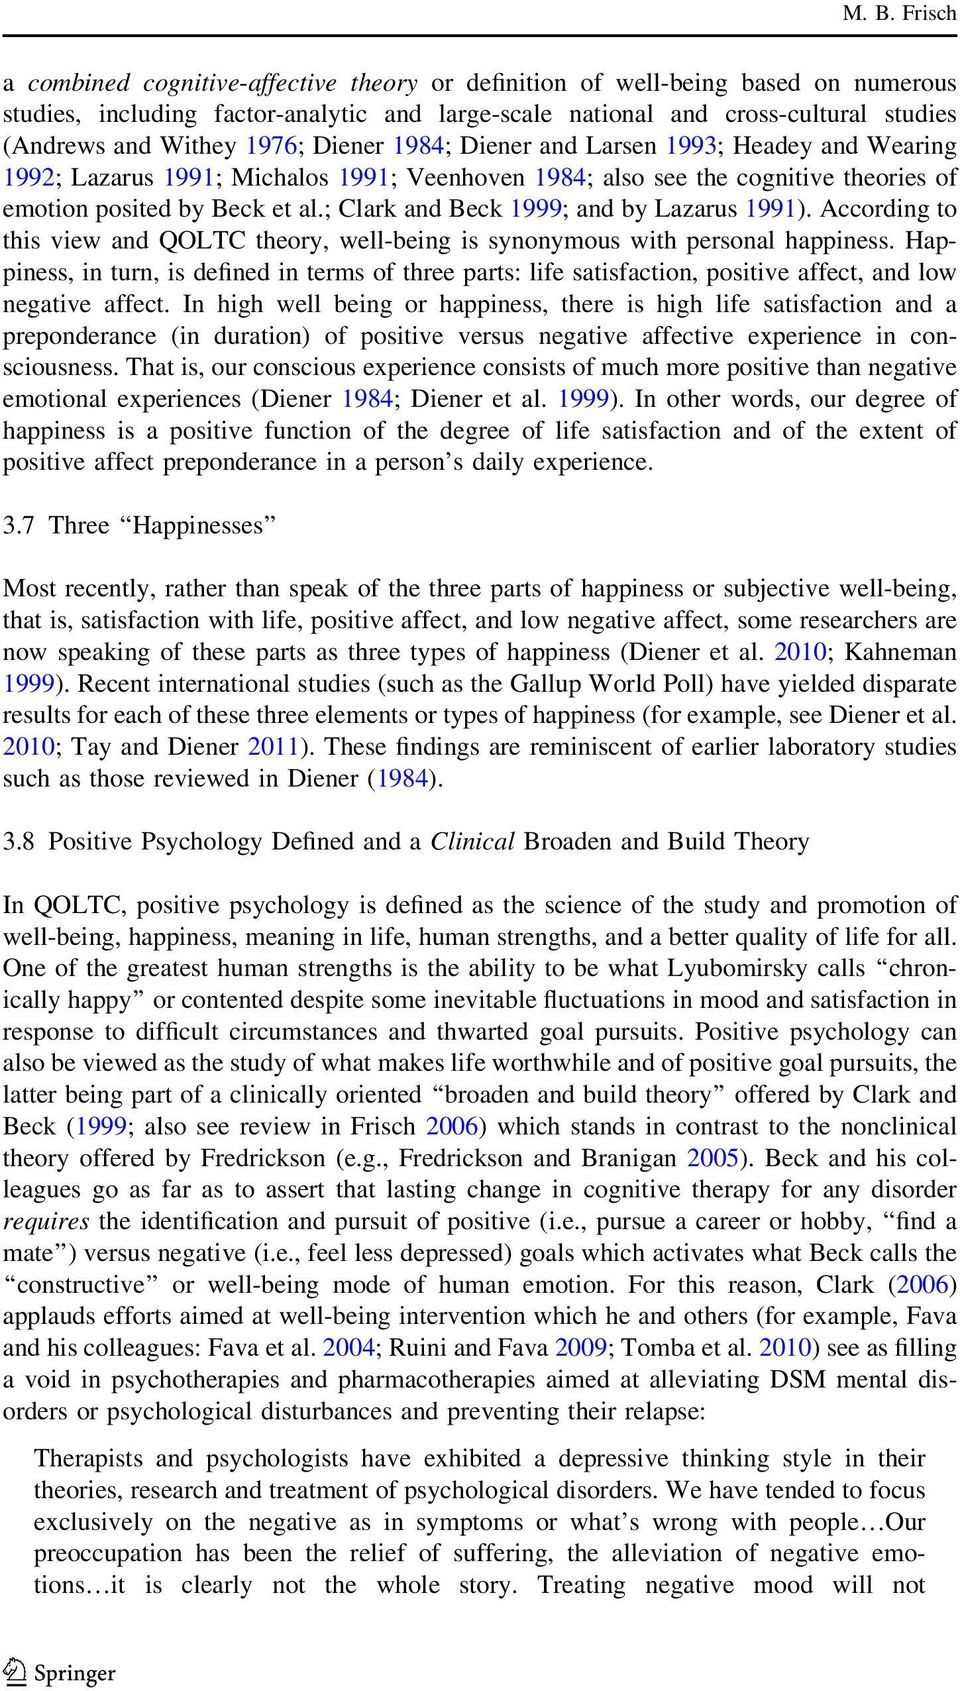 ; Clark and Beck 1999; and by Lazarus 1991). According to this view and QOLTC theory, well-being is synonymous with personal happiness.